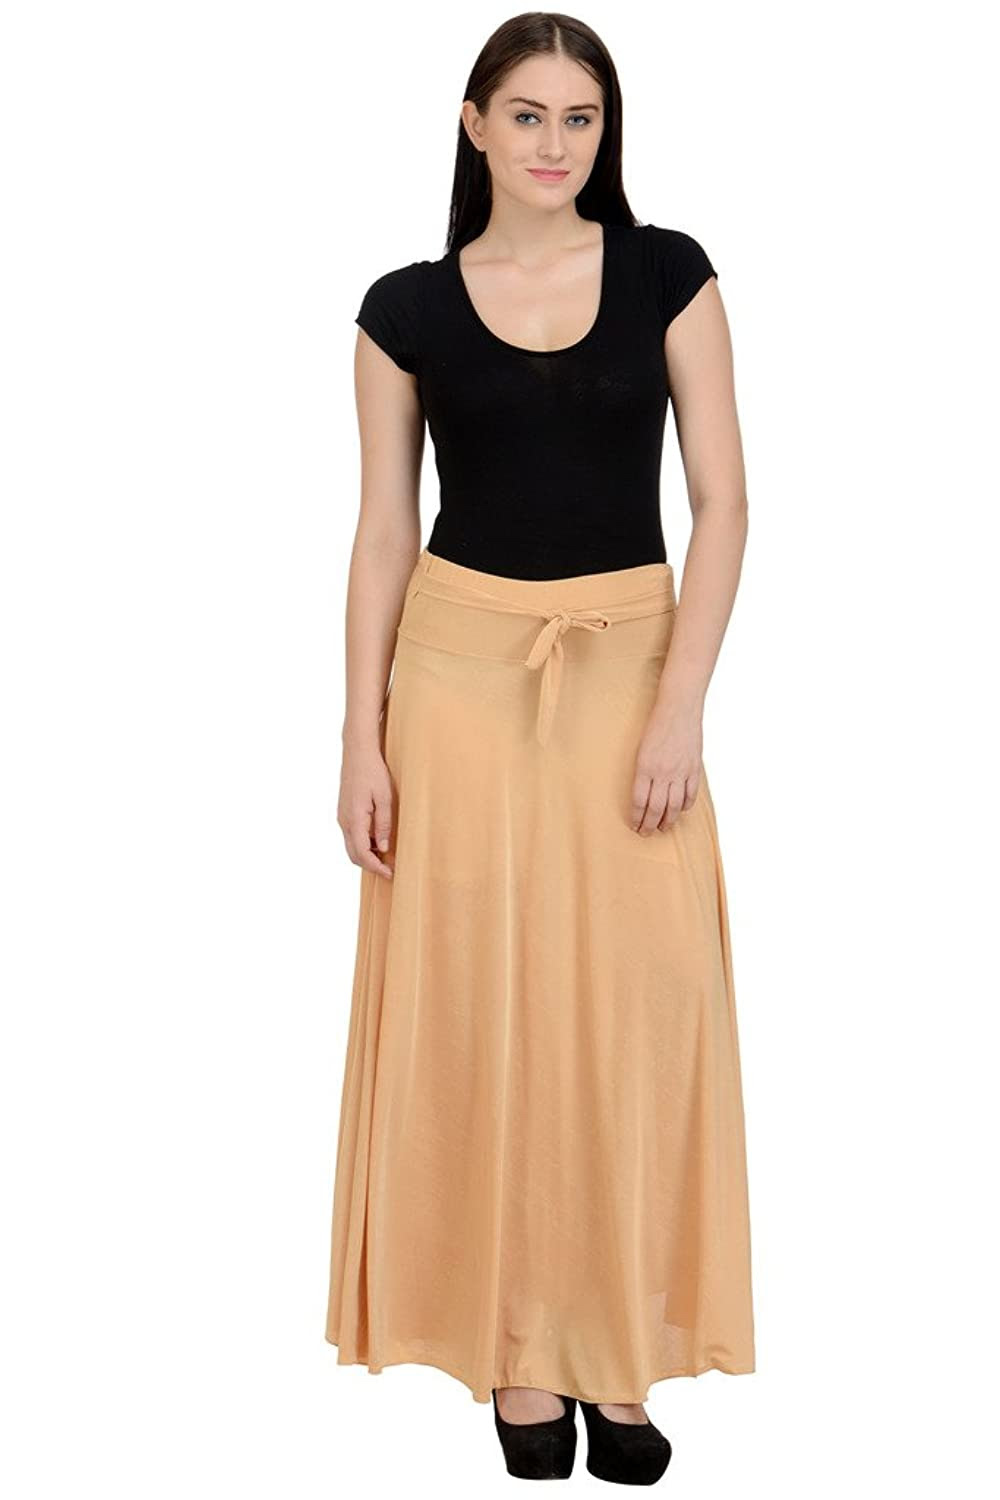 Deals on NumBrave Women's Beige Lycra Skirt